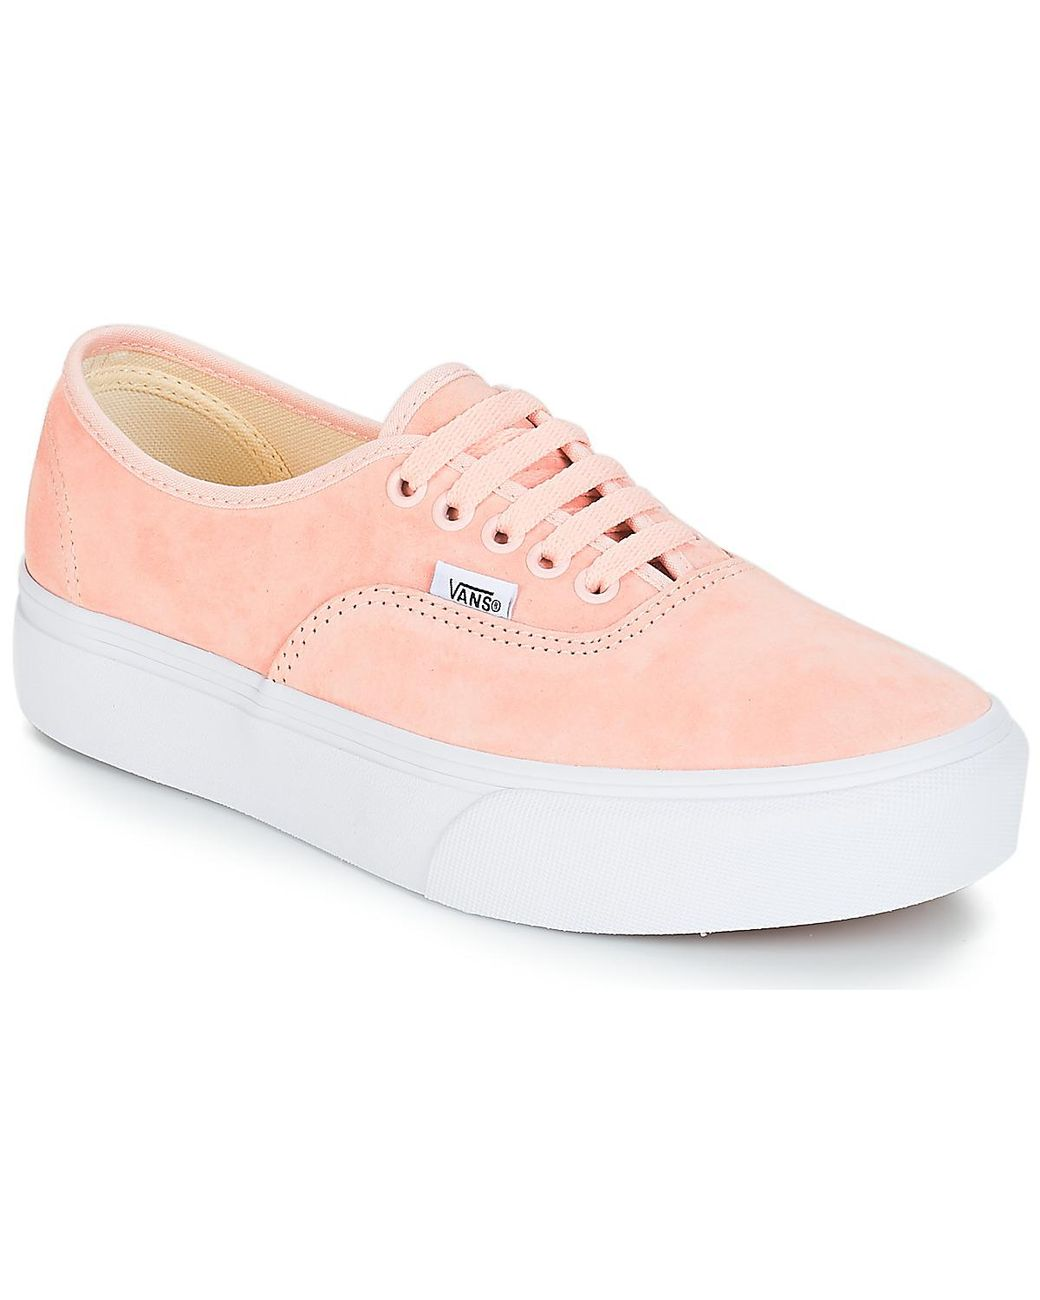 9144c43008 Vans Authentic Platform 2.0 Shoes (trainers) in Pink - Lyst